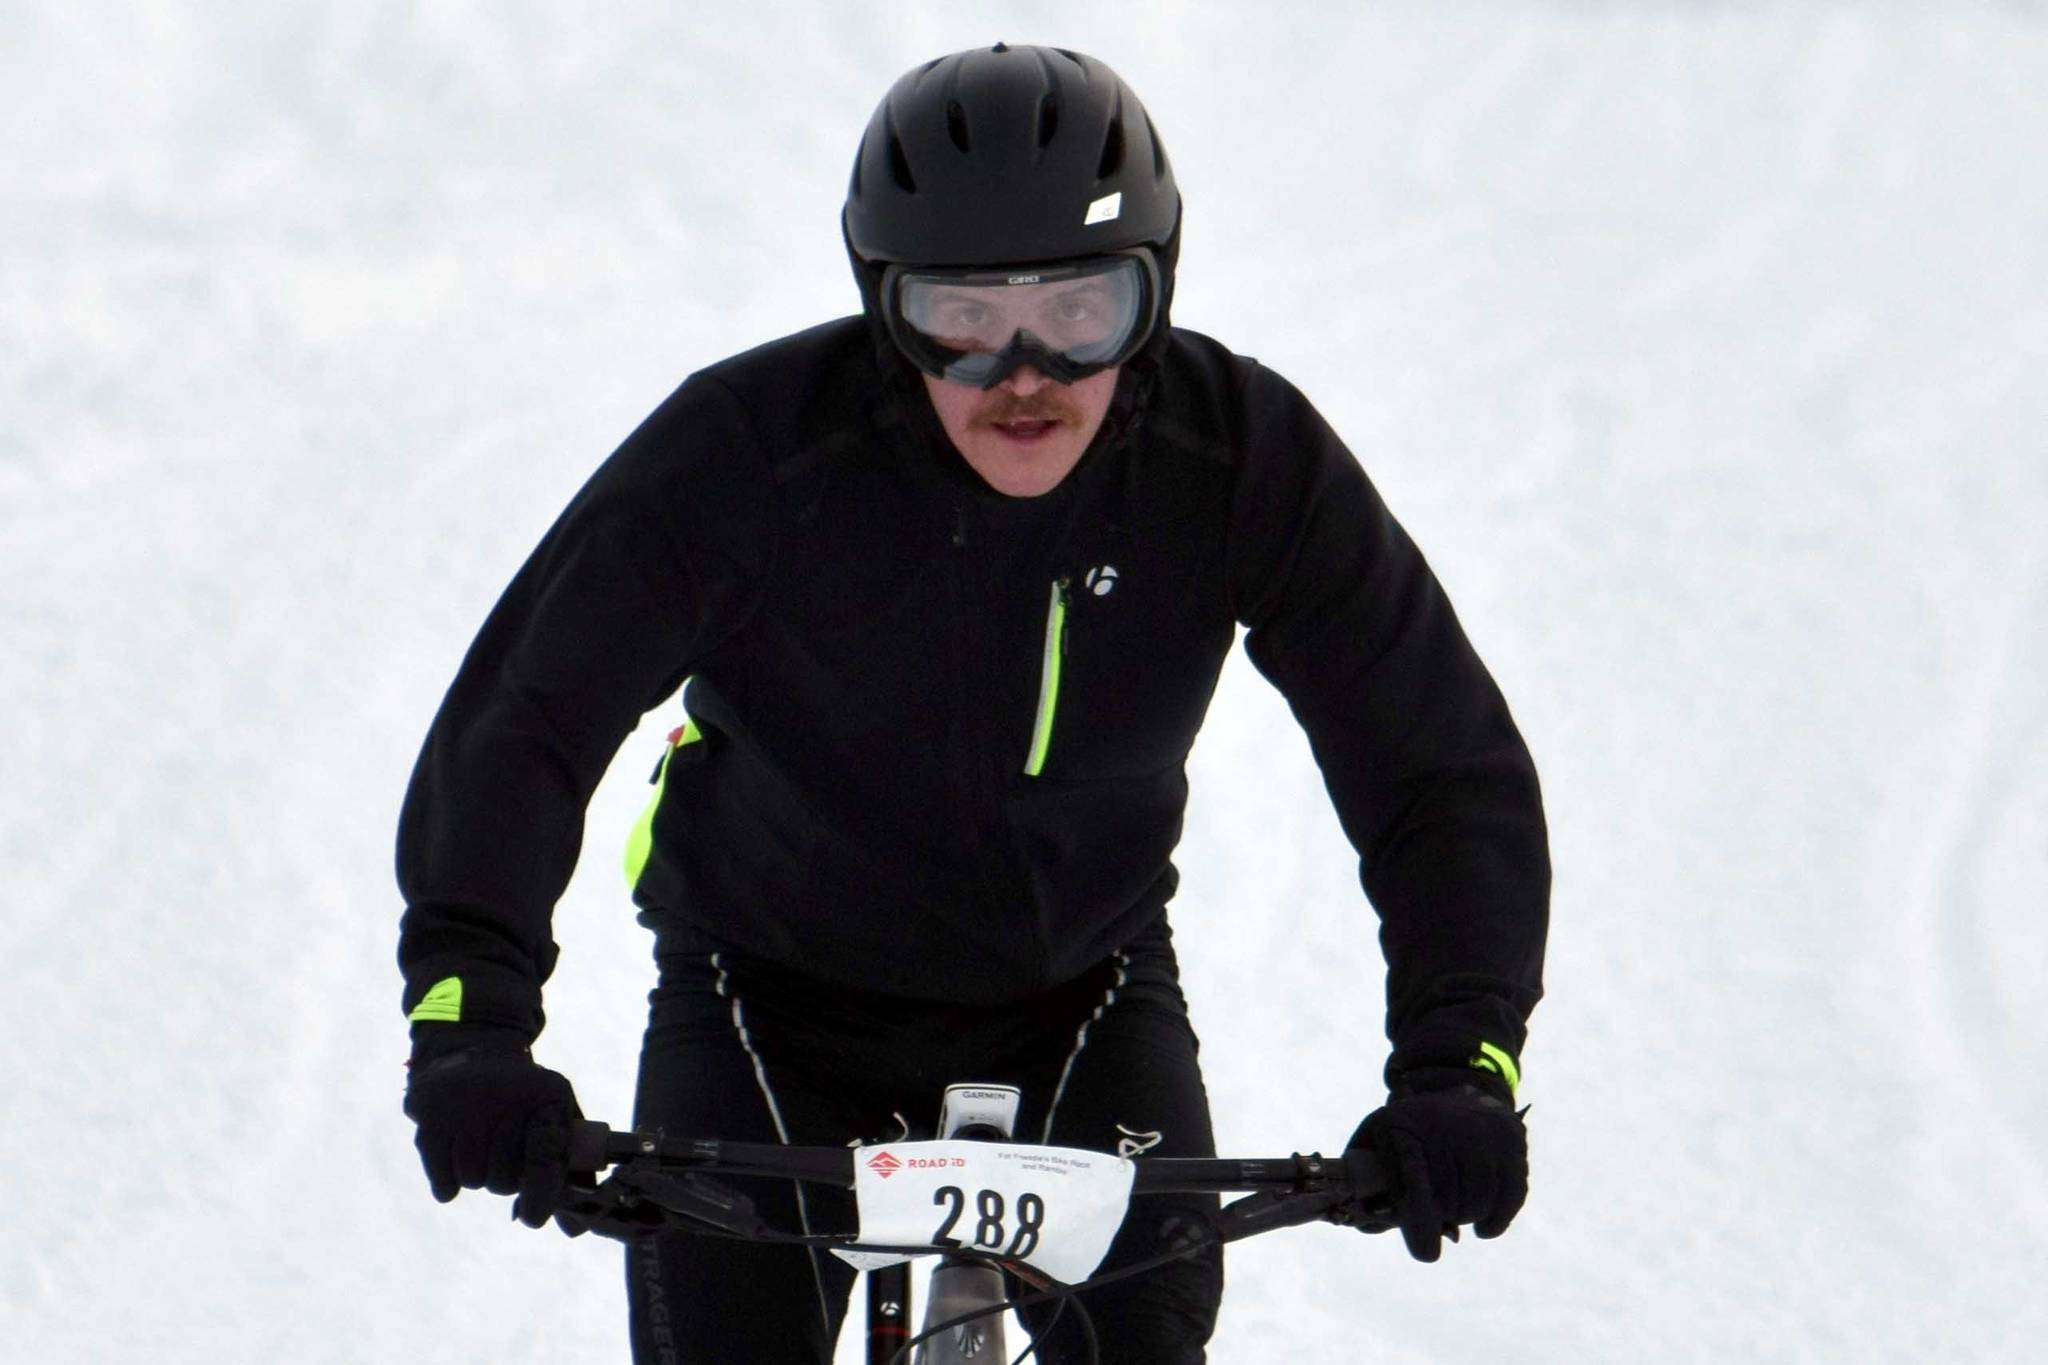 Mike Crawford barrels down a hill during Fat Freddie's Bike Race and Ramble on Saturday, Feb. 9, 2019, in the Caribou Hills near Freddie's Roadhouse. (Photo by Jeff Helminiak/Peninsula Clarion)                                 Mike Crawford barrels down a hill during Fat Freddie's Bike Race and Ramble on Saturday, Feb. 9, 2019, in the Caribou Hills near Freddie's Roadhouse. (Photo by Jeff Helminiak/Peninsula Clarion)